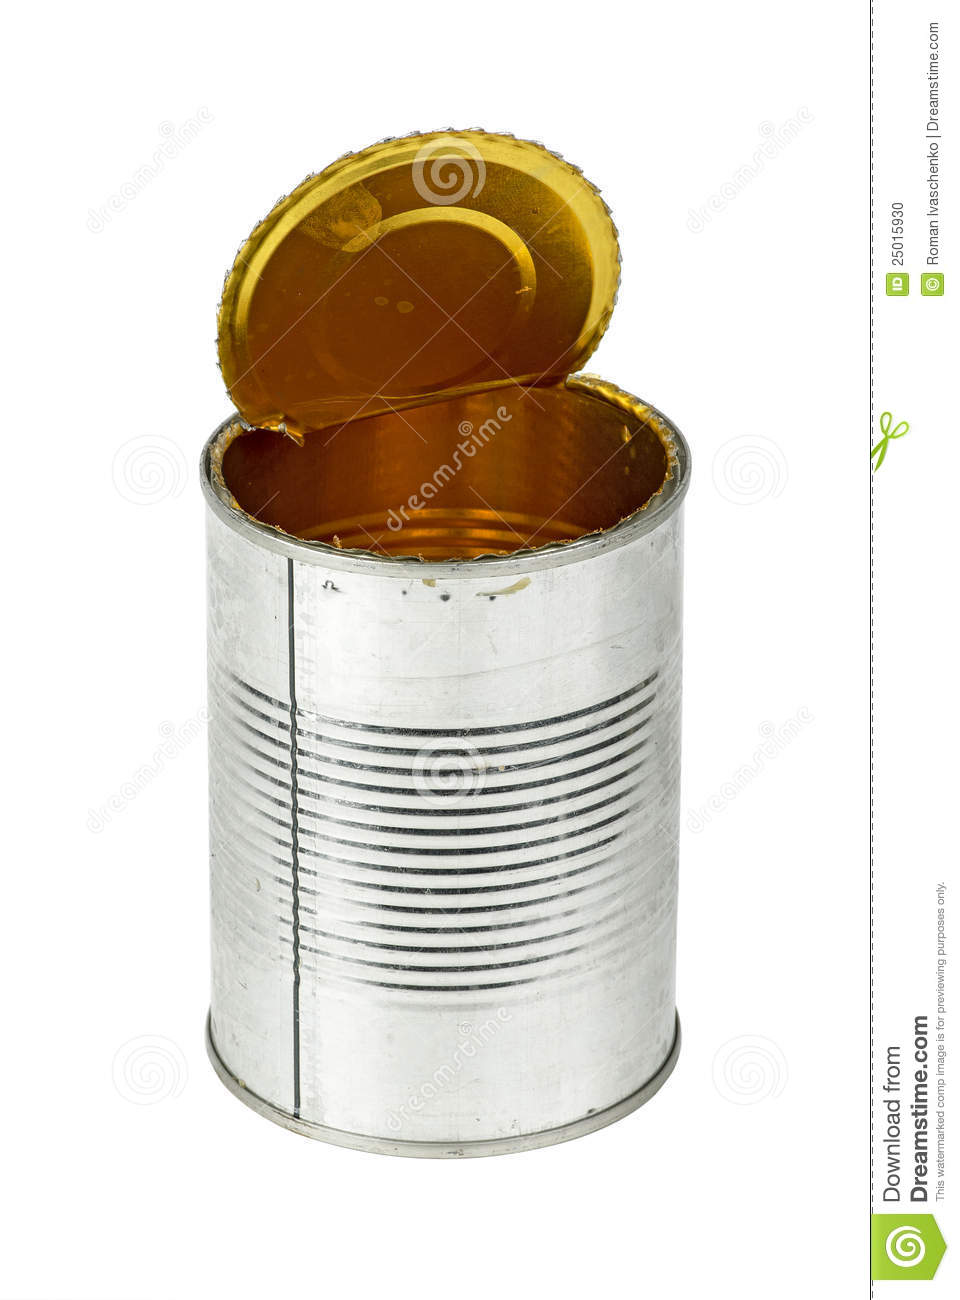 Empty Tin Can Stock Photography: Opened Empty Tin Can Stock Photo. Image Of Junk, Tinned